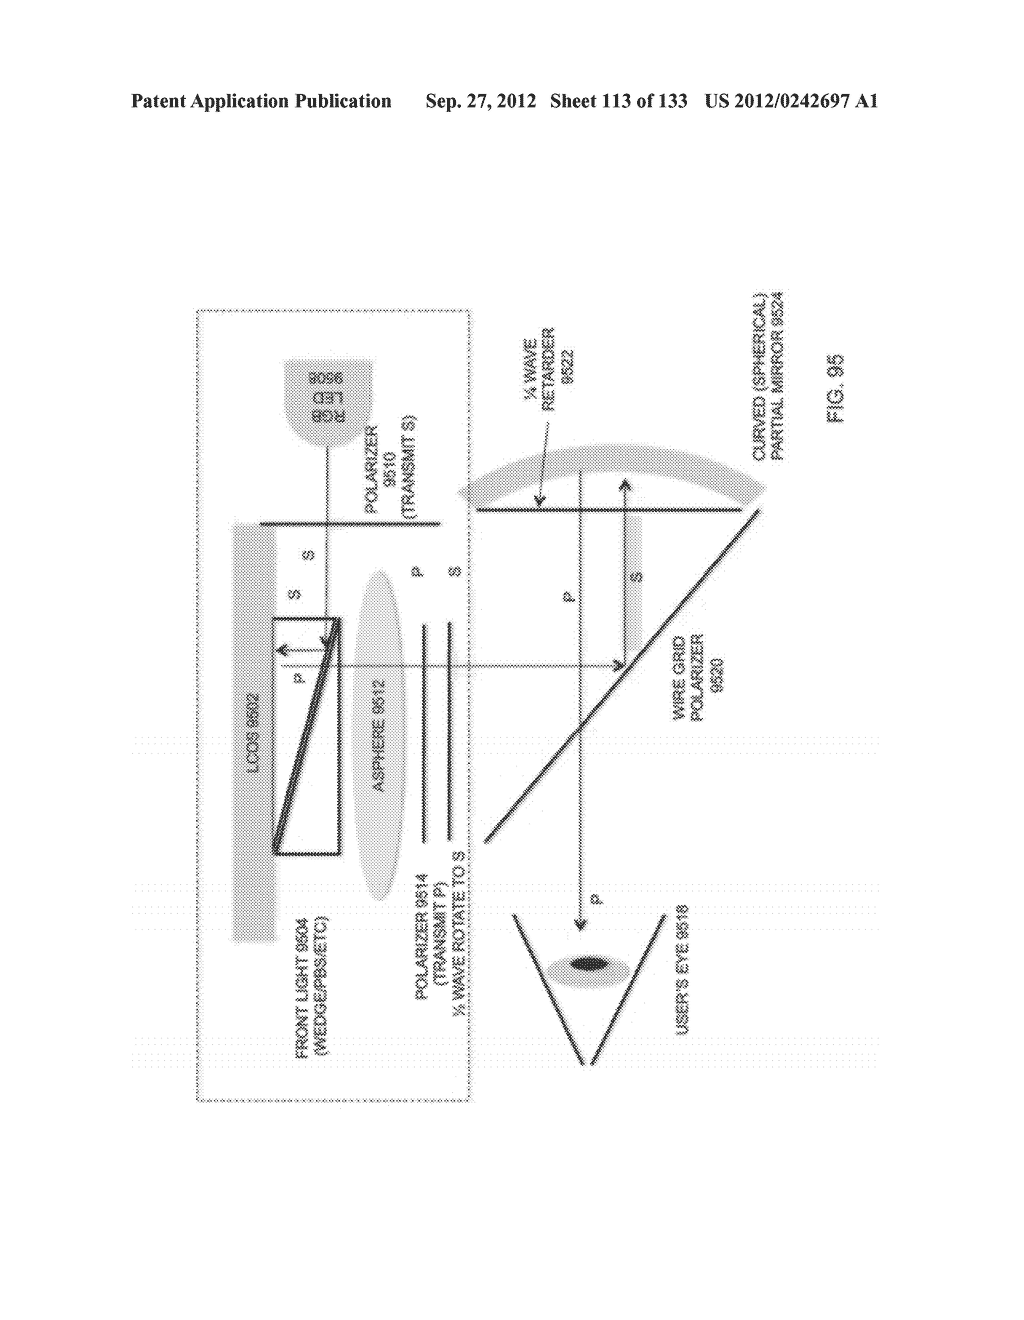 SEE-THROUGH NEAR-EYE DISPLAY GLASSES WITH THE OPTICAL ASSEMBLY INCLUDING     ABSORPTIVE POLARIZERS OR ANTI-REFLECTIVE COATINGS TO REDUCE STRAY LIGHT - diagram, schematic, and image 114